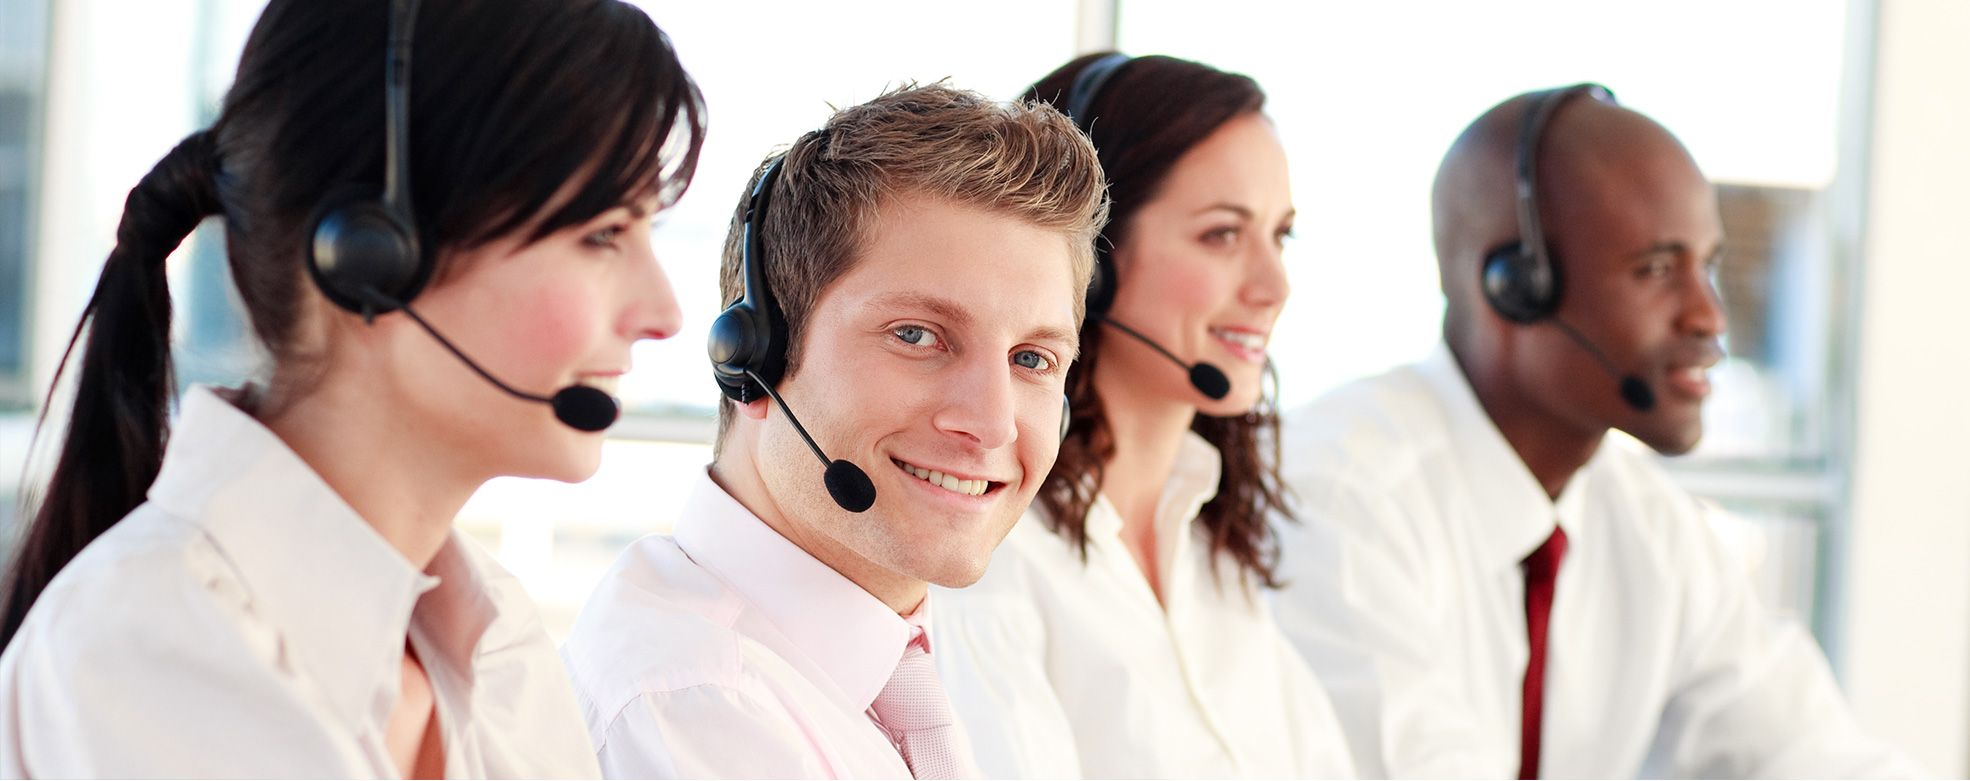 In order to attract and retain bilingual Team Members